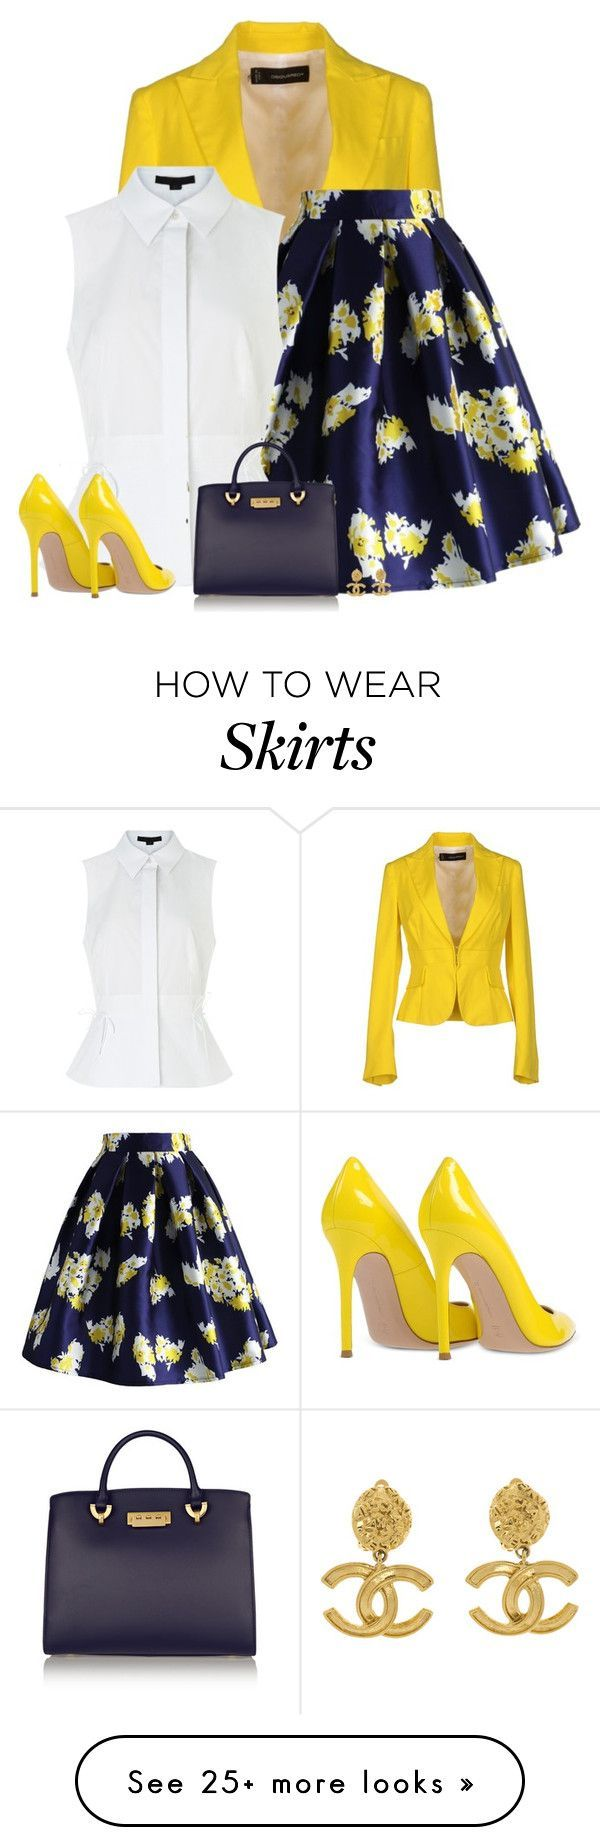 """""""bright blazer"""" by divacrafts on Polyvore featuring Dsquared2, Chicwish, Alexander Wang, Gianvito Rossi, ZAC Zac Posen, Chanel, women's clothing, women's fashion, women and female"""